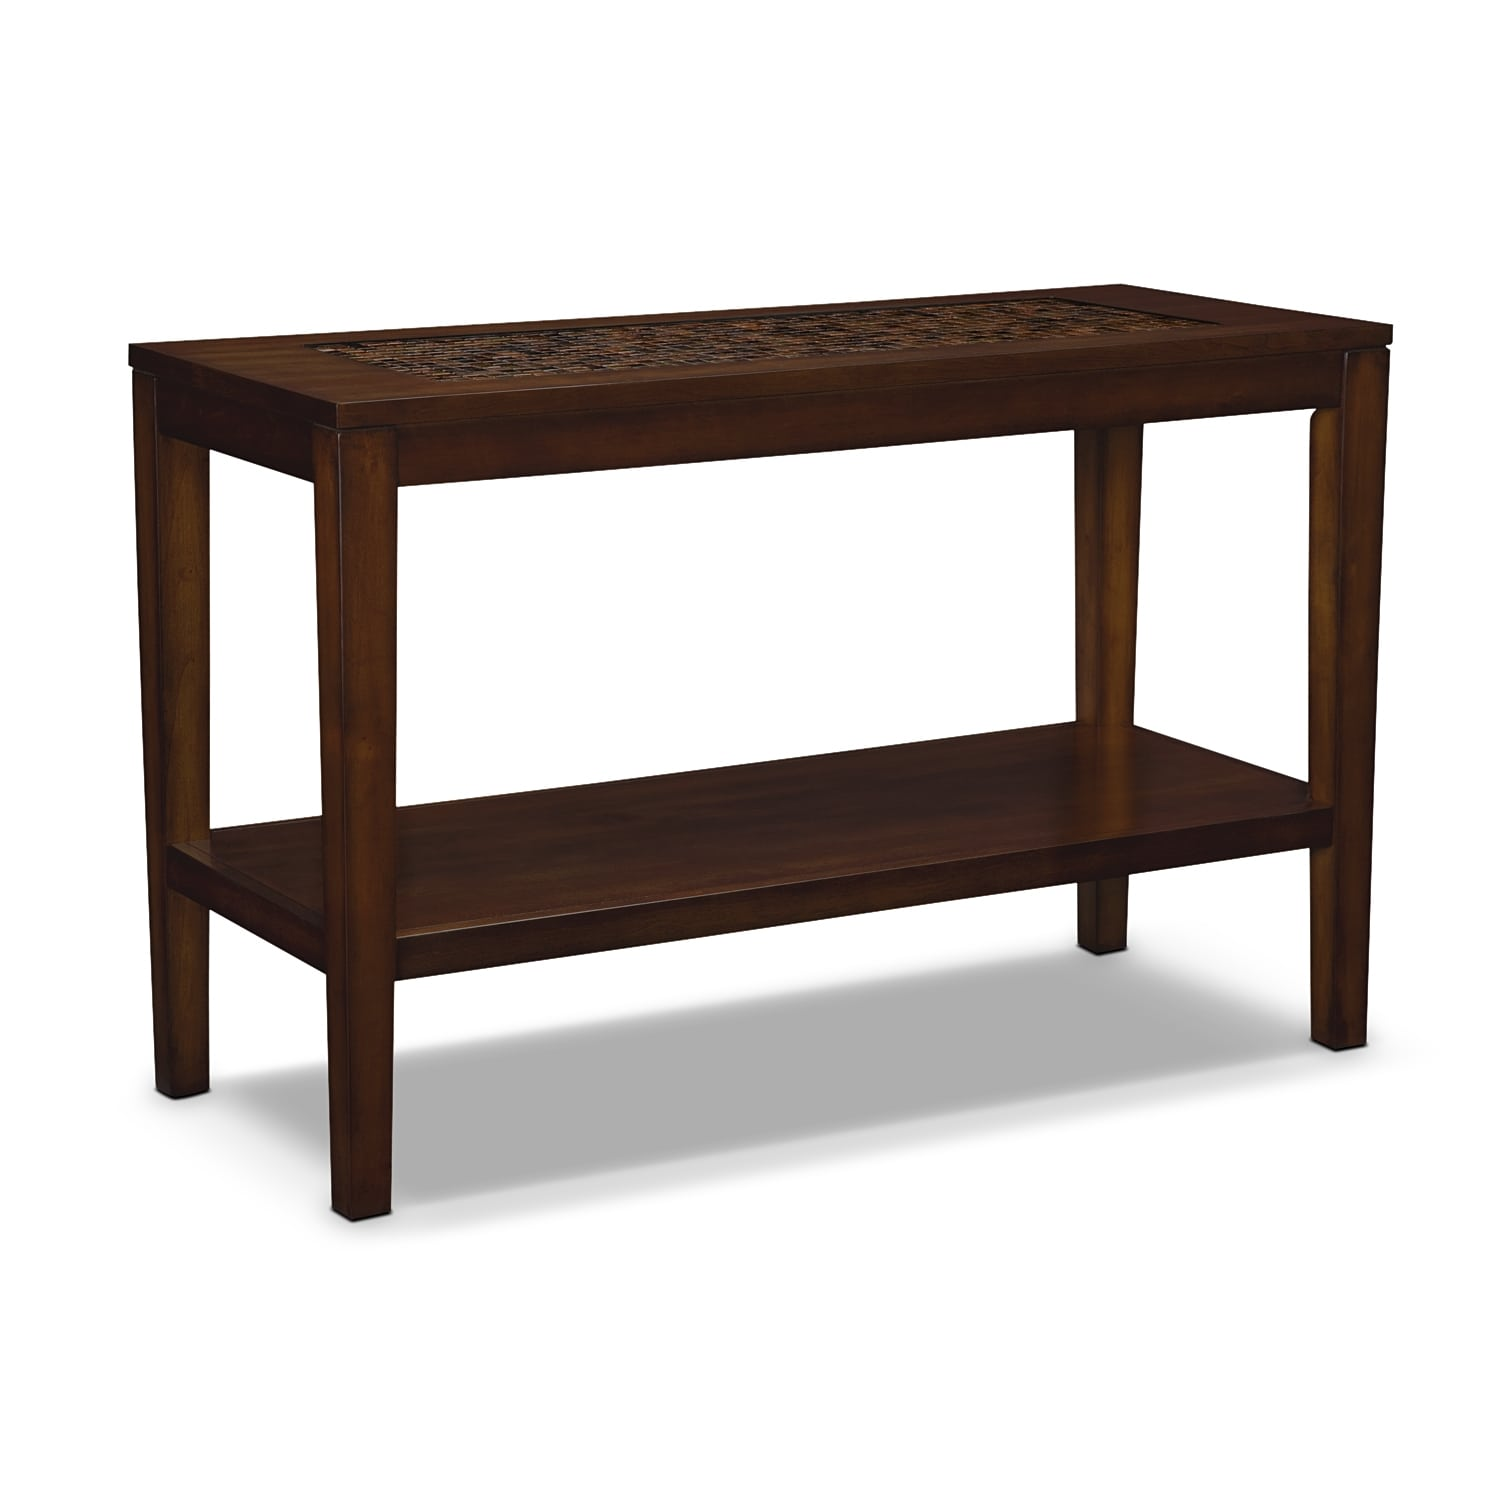 Carson sofa table brown value city furniture and for Sofa side table